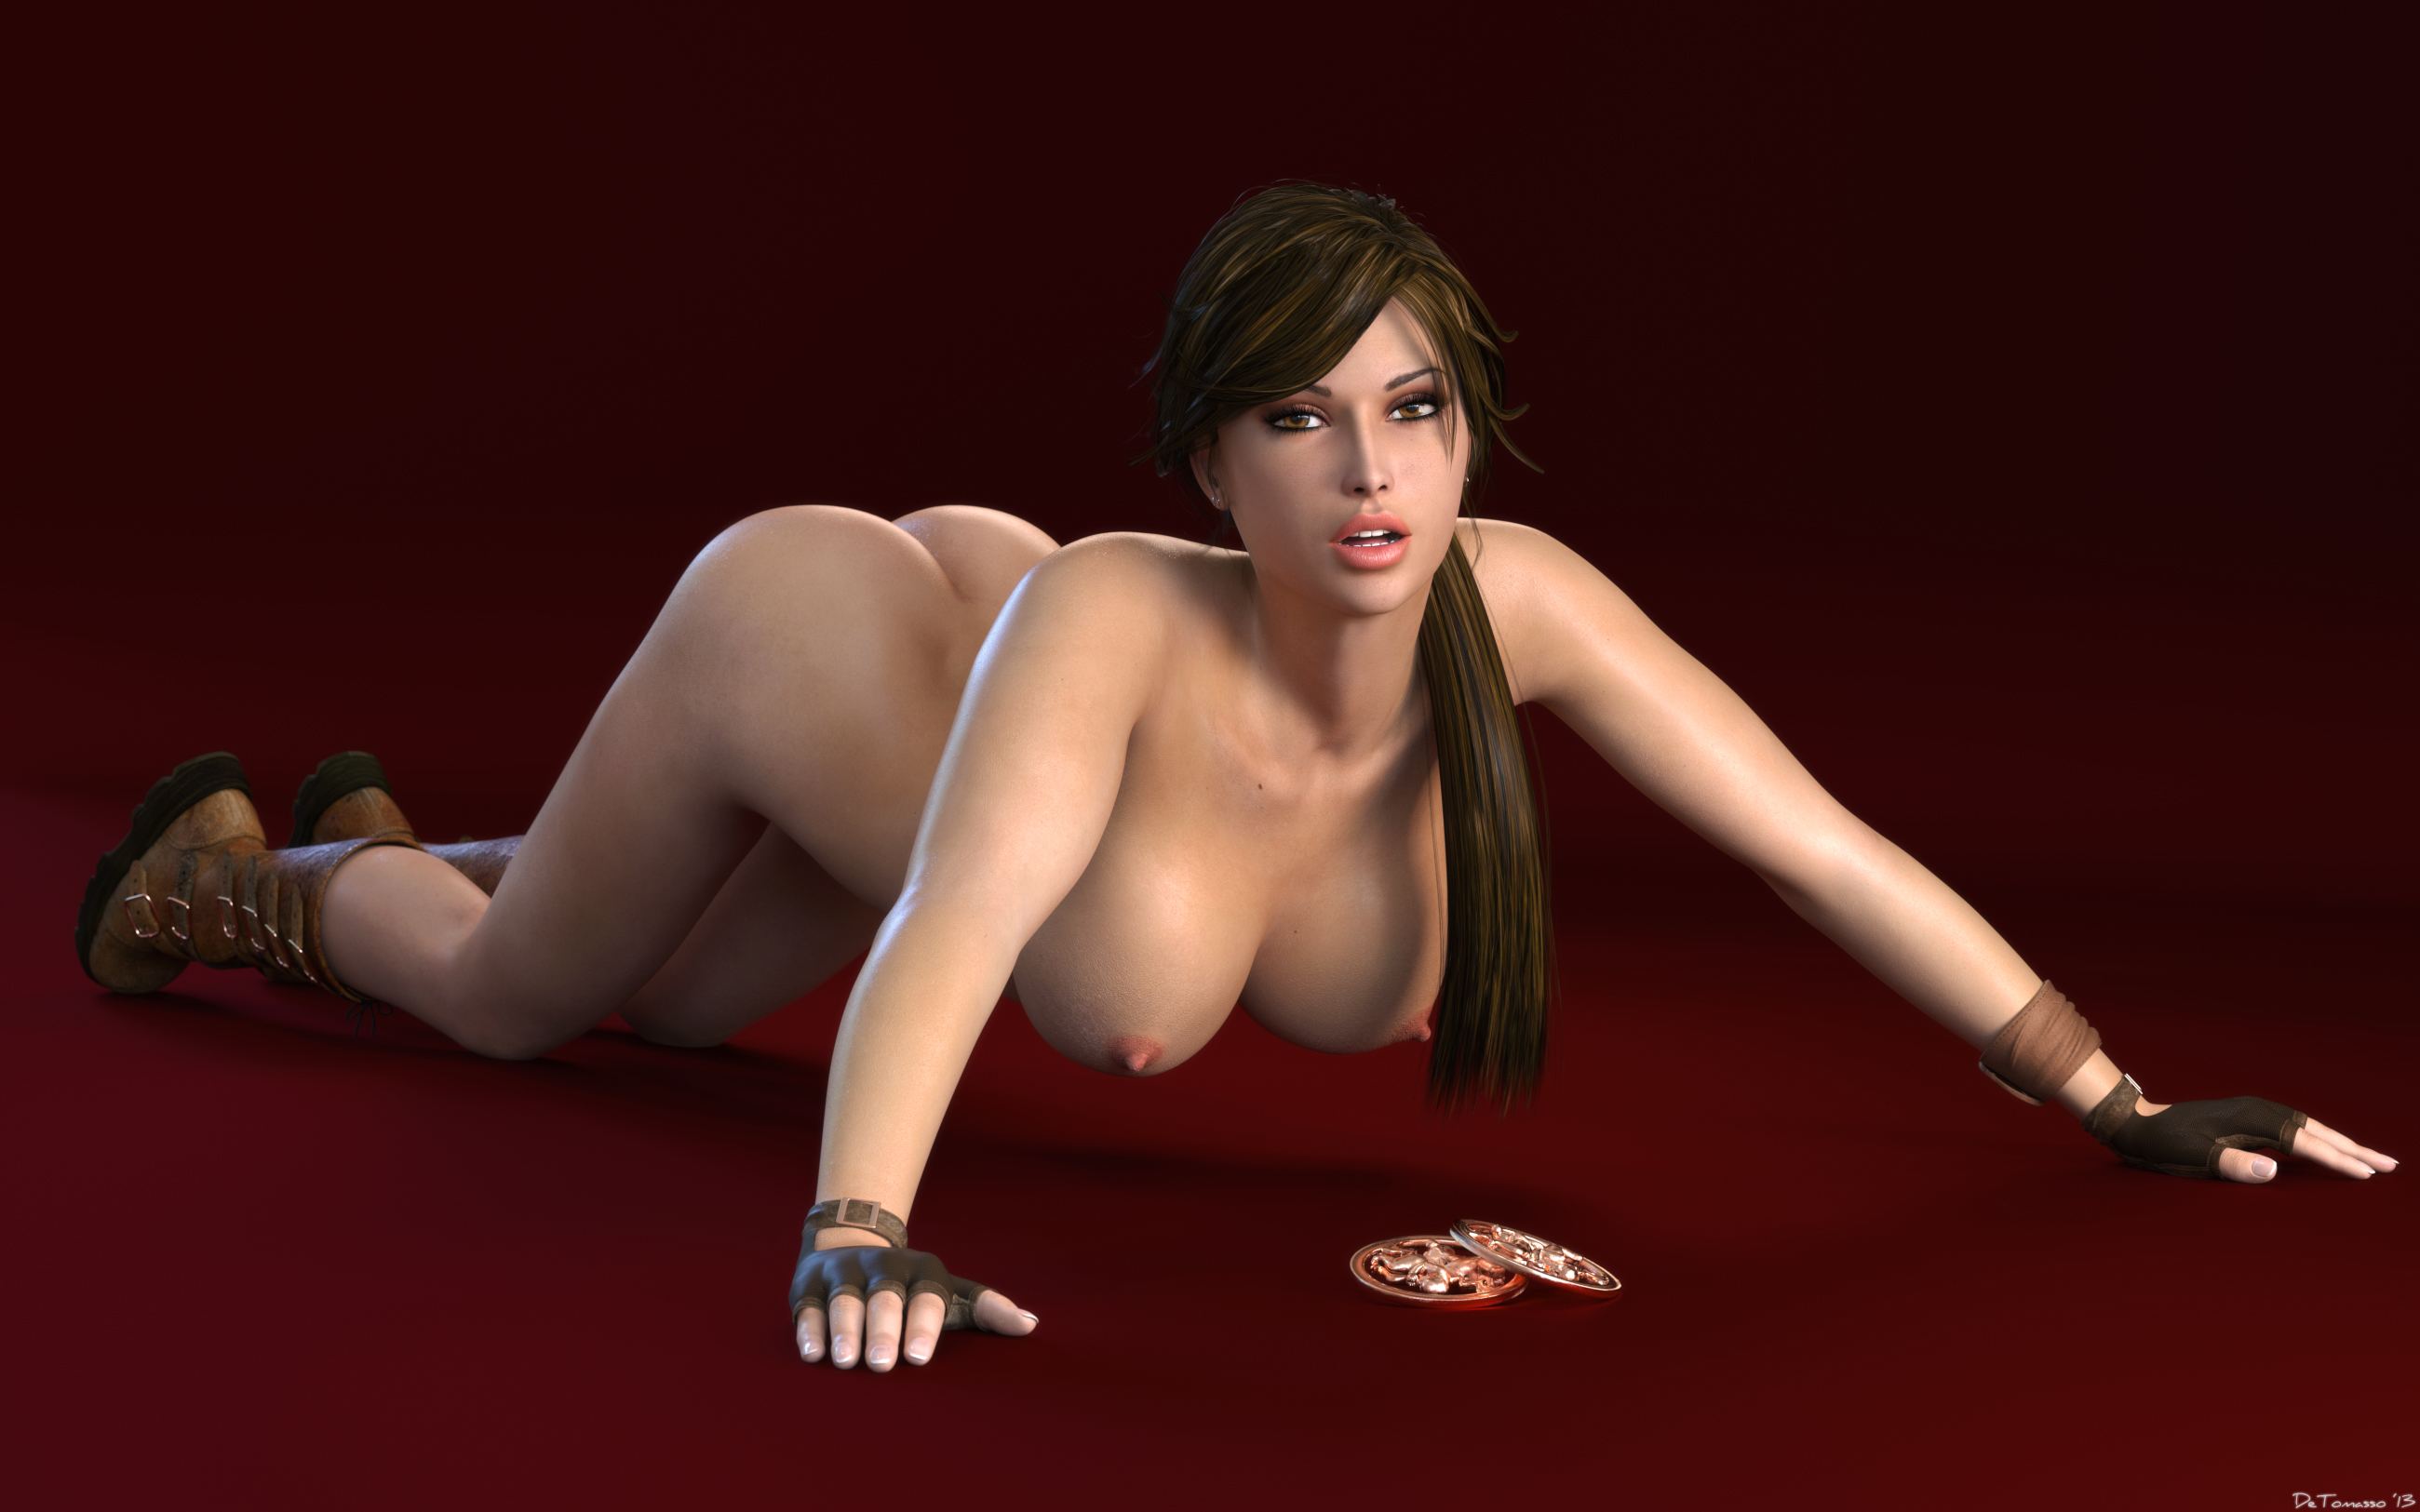 Lara croft naked wallpapers exposed video